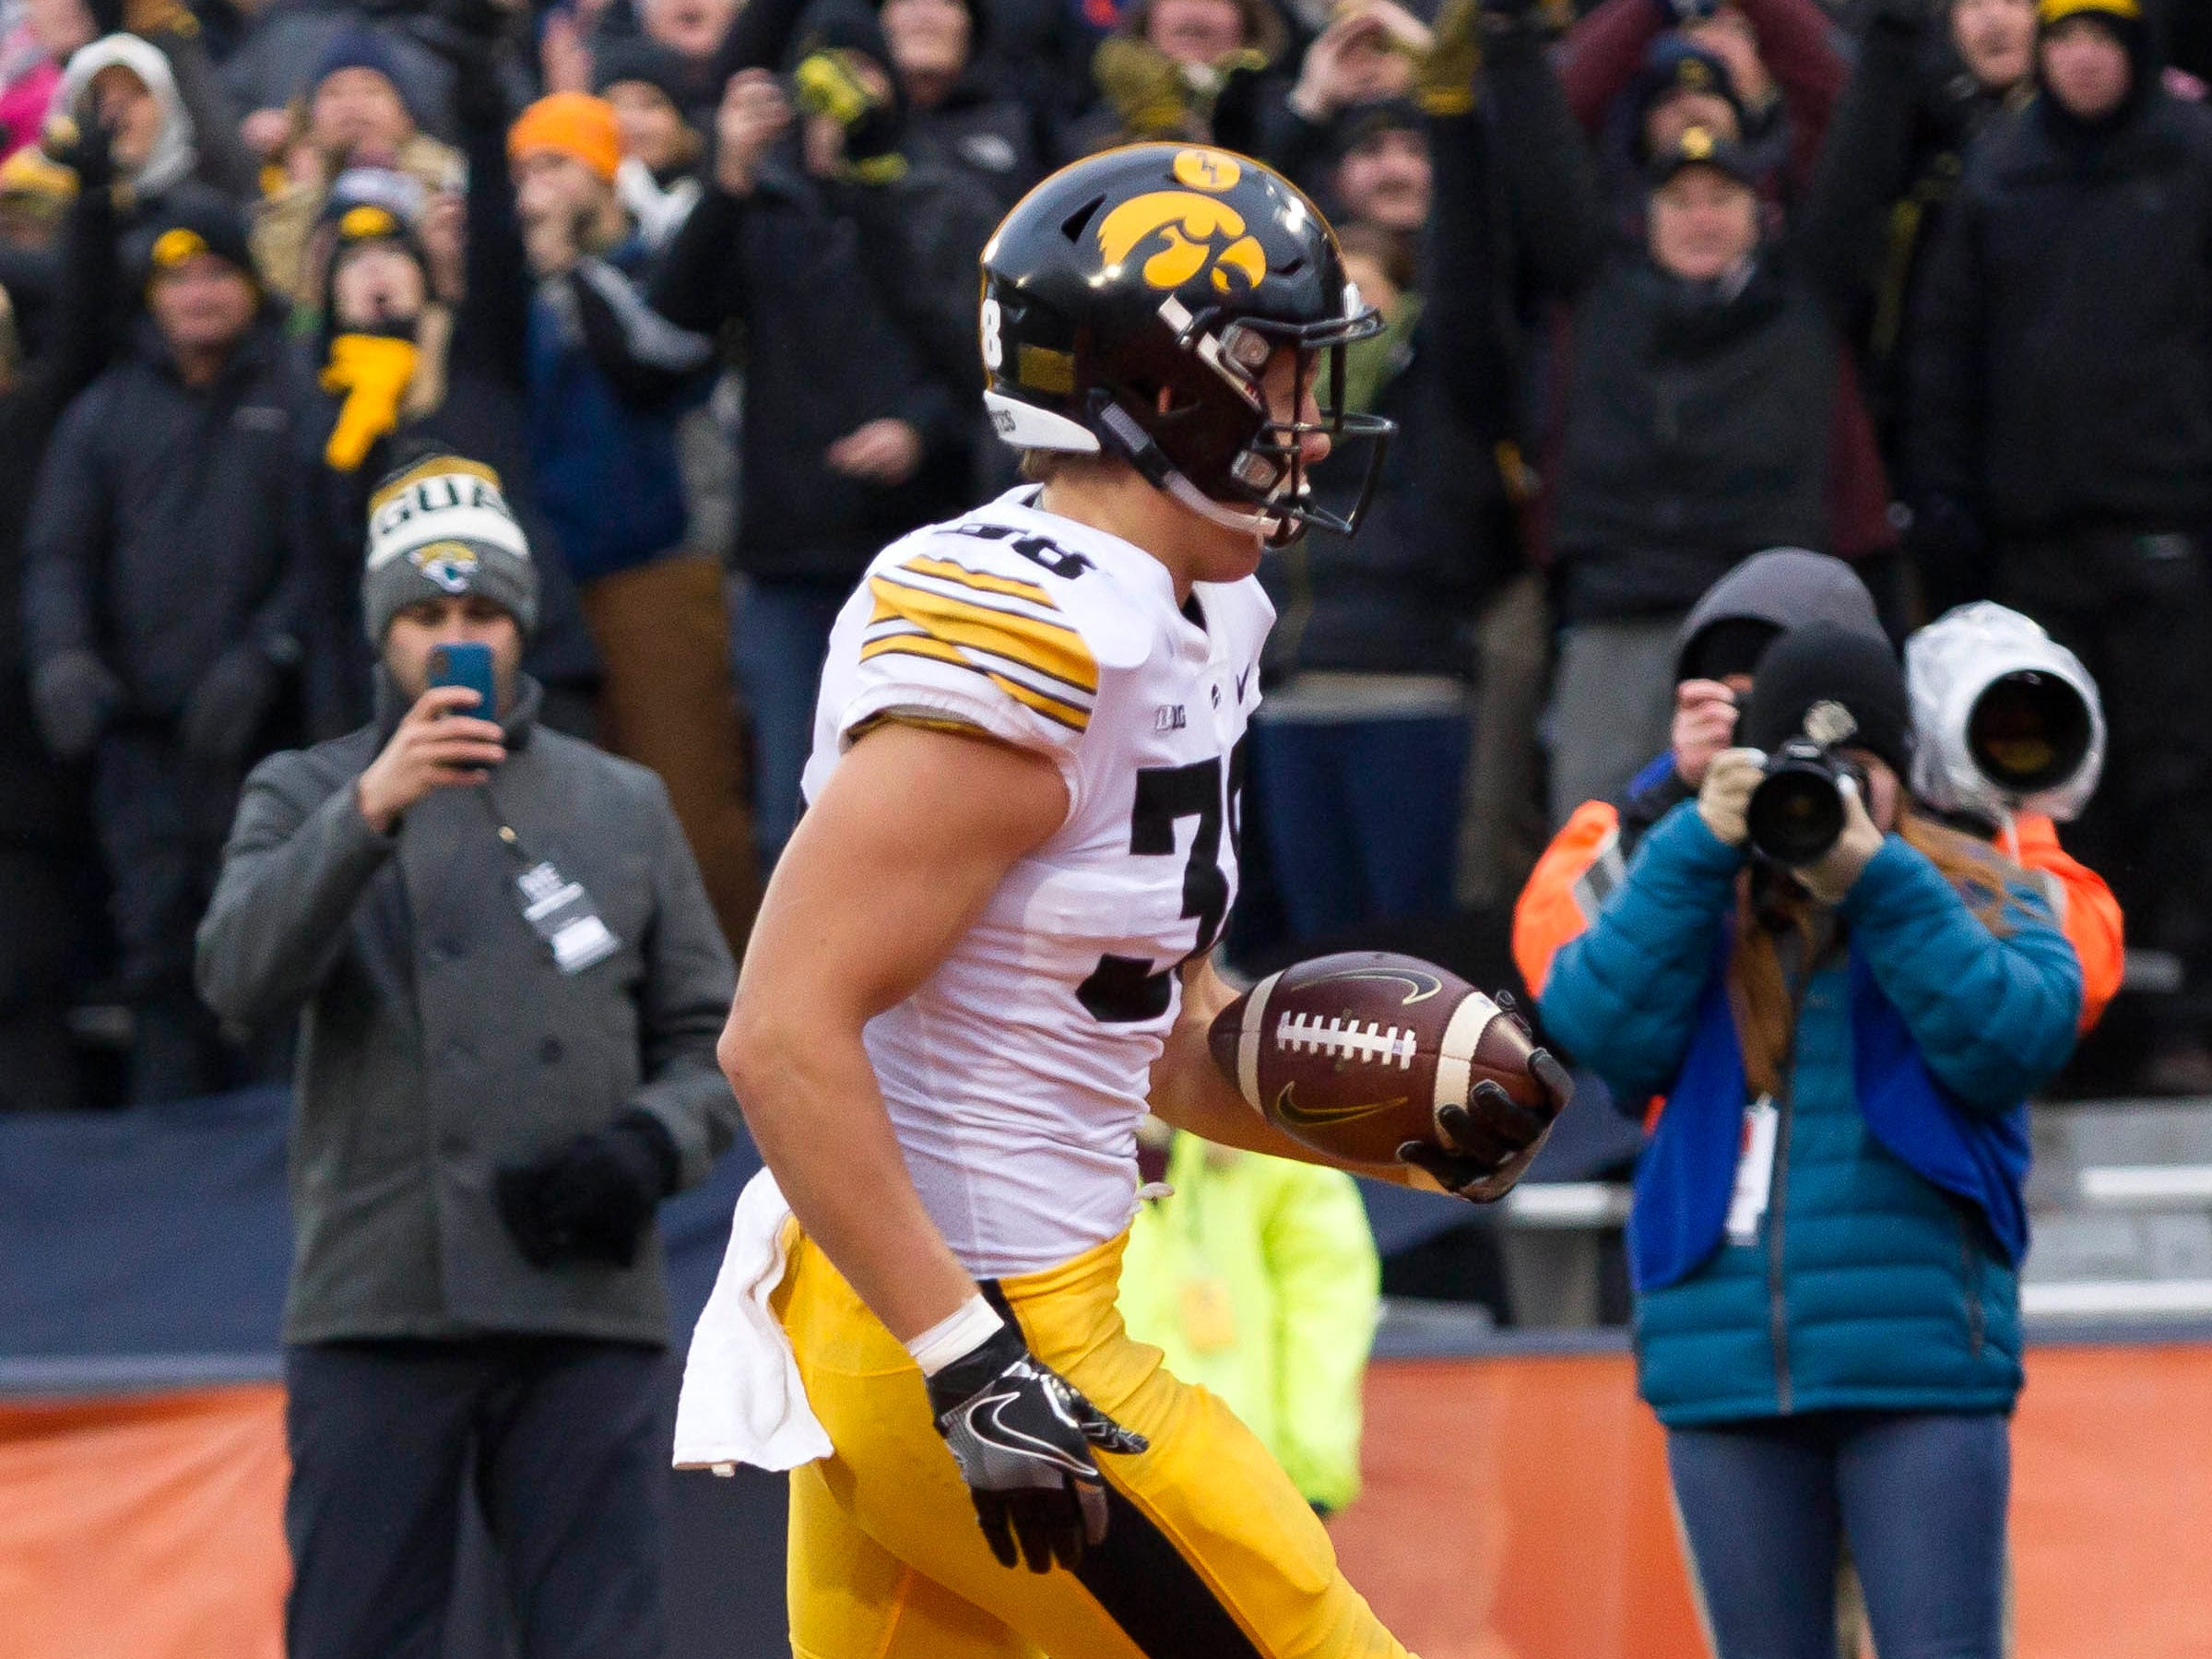 Nov 17, 2018; Champaign, IL, USA; Iowa Hawkeyes tight end T.J. Hockenson (38) scores a touchdown during the second quarter against the Illinois Fighting Illini at Memorial Stadium.